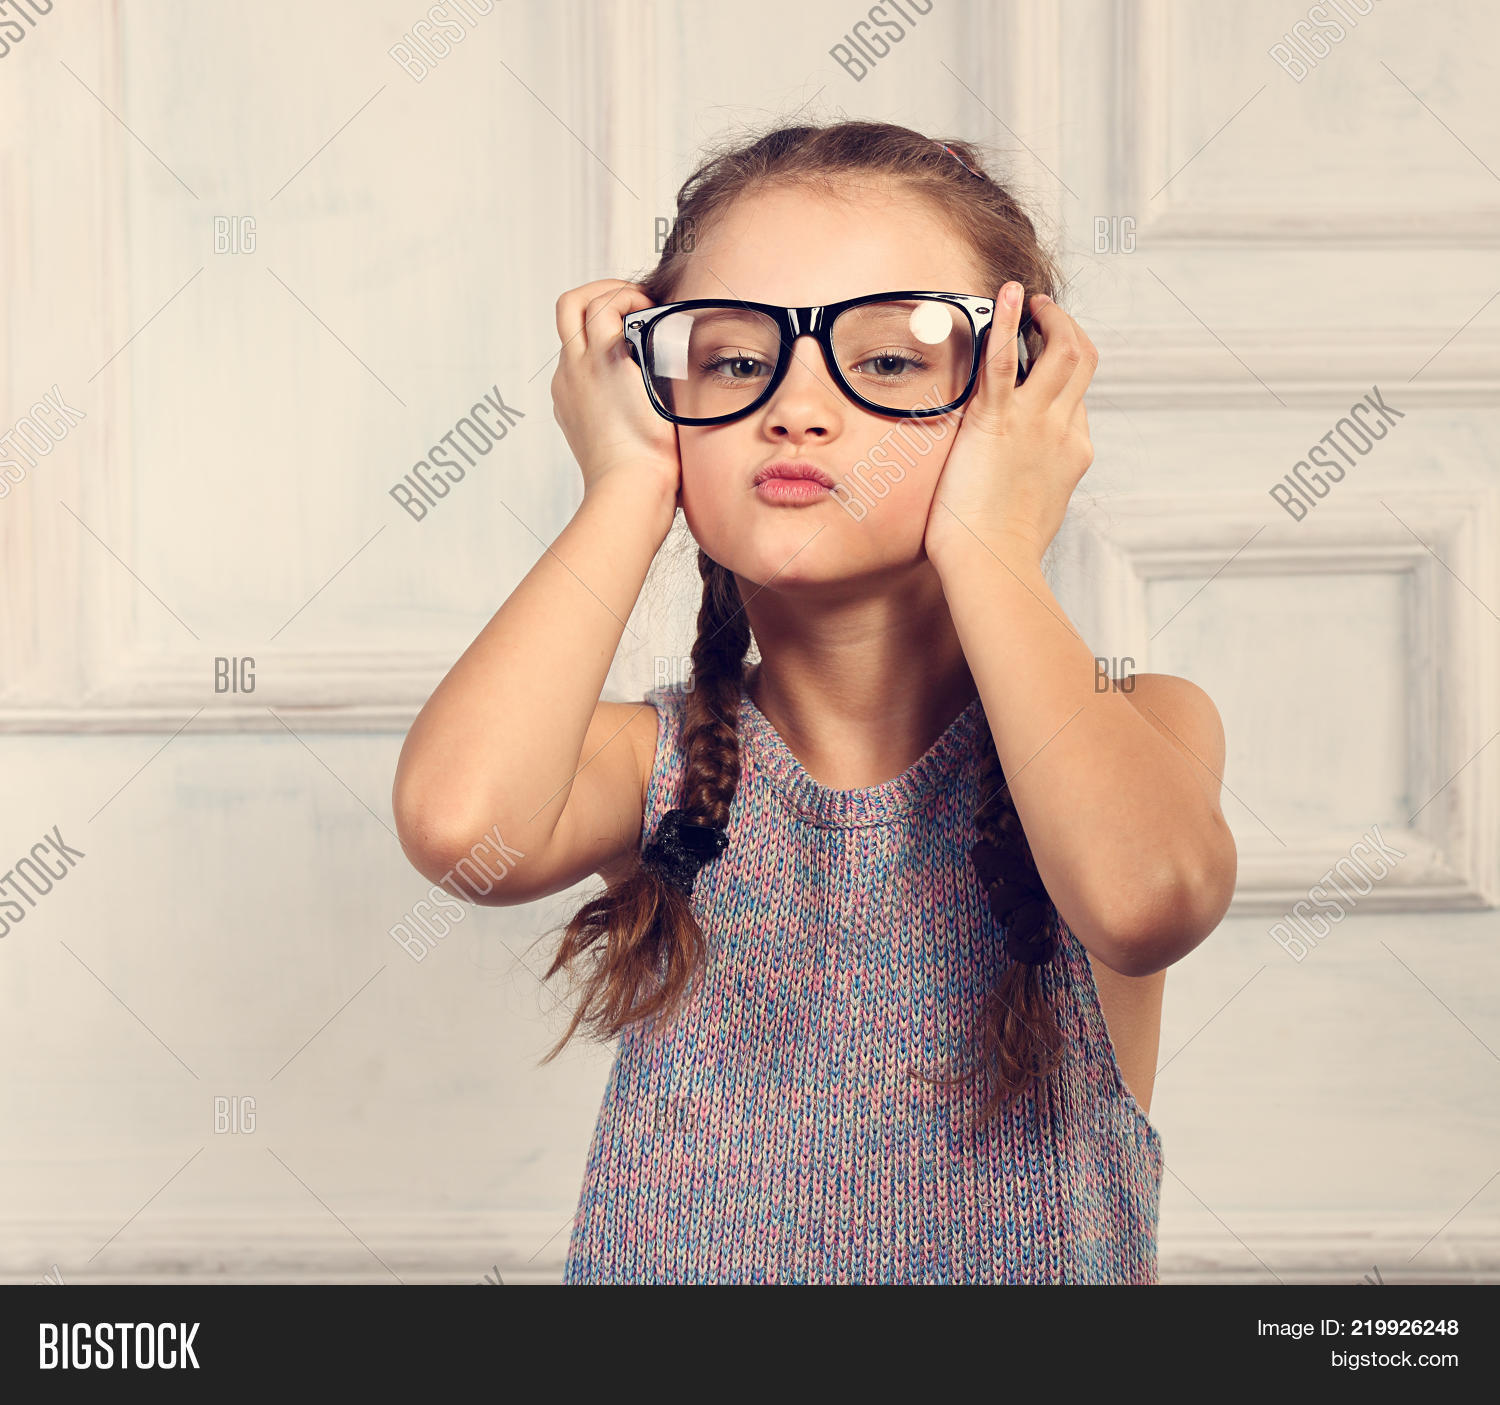 8a92ef2ee7 Happy Positive Thinking Kid Girl In Fashion Glasses With Excited Emotional  Face Looking Up On Studio